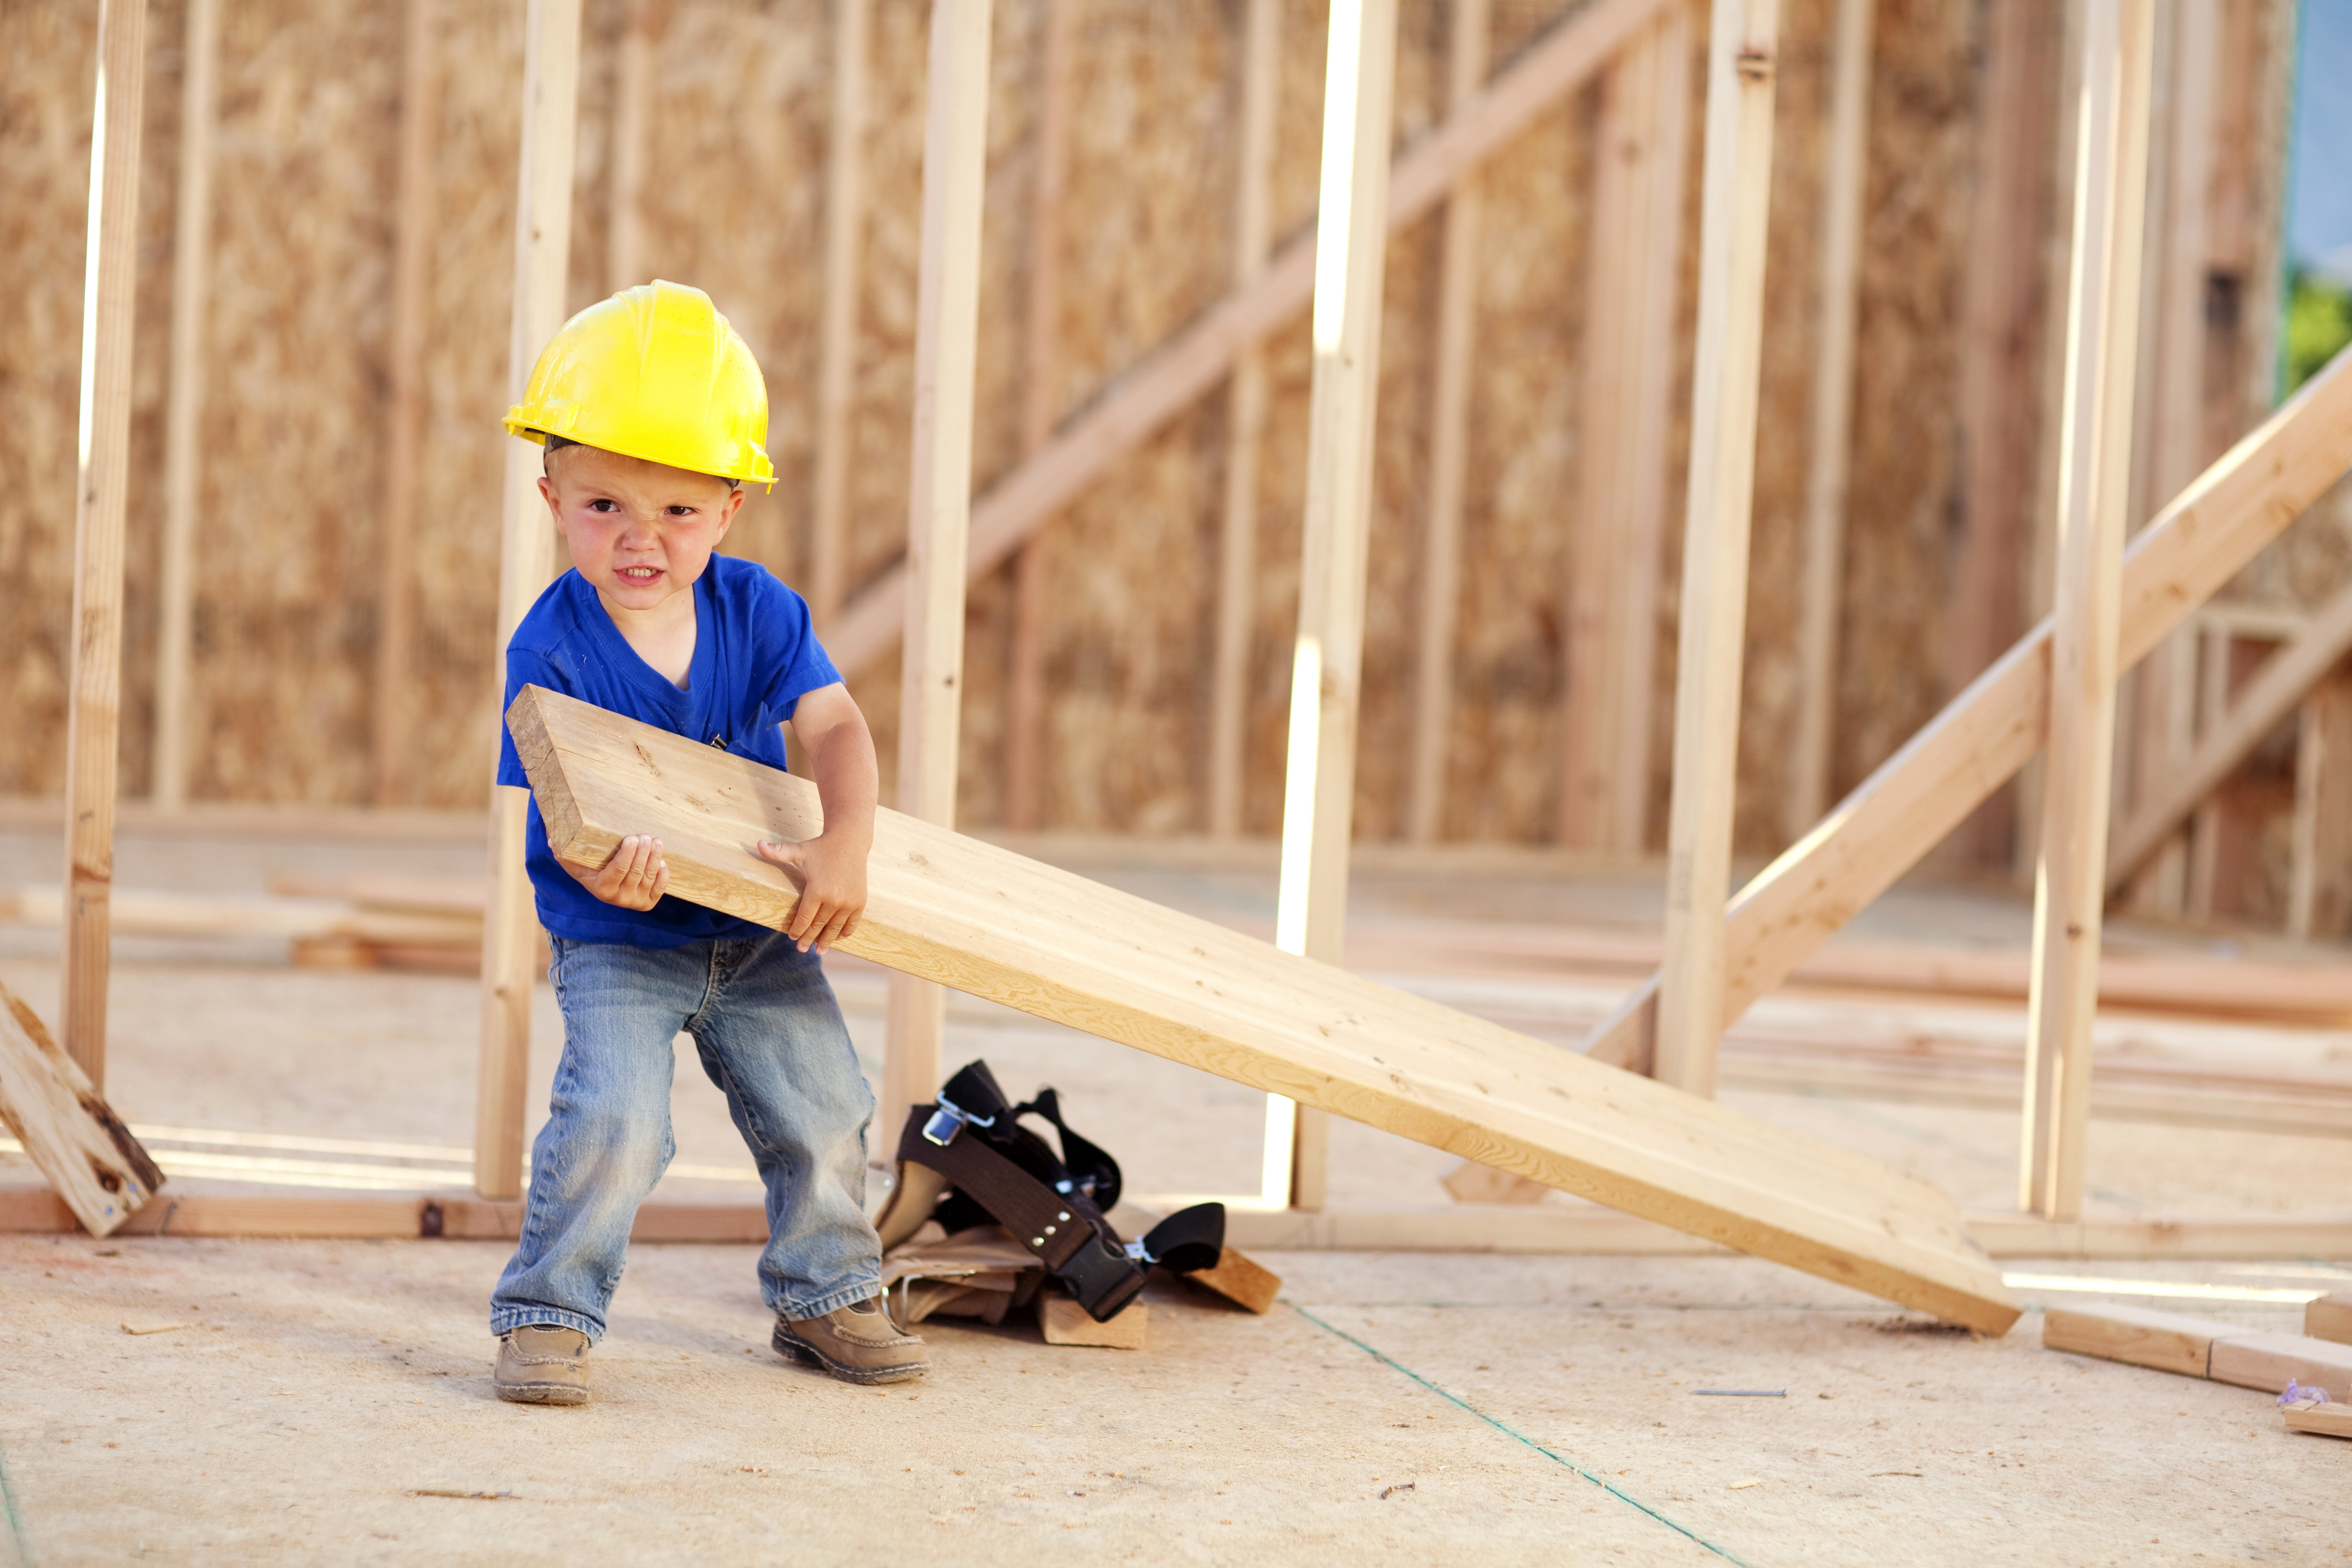 A Construction Contractor's Guide to Recruiting Younger Employees